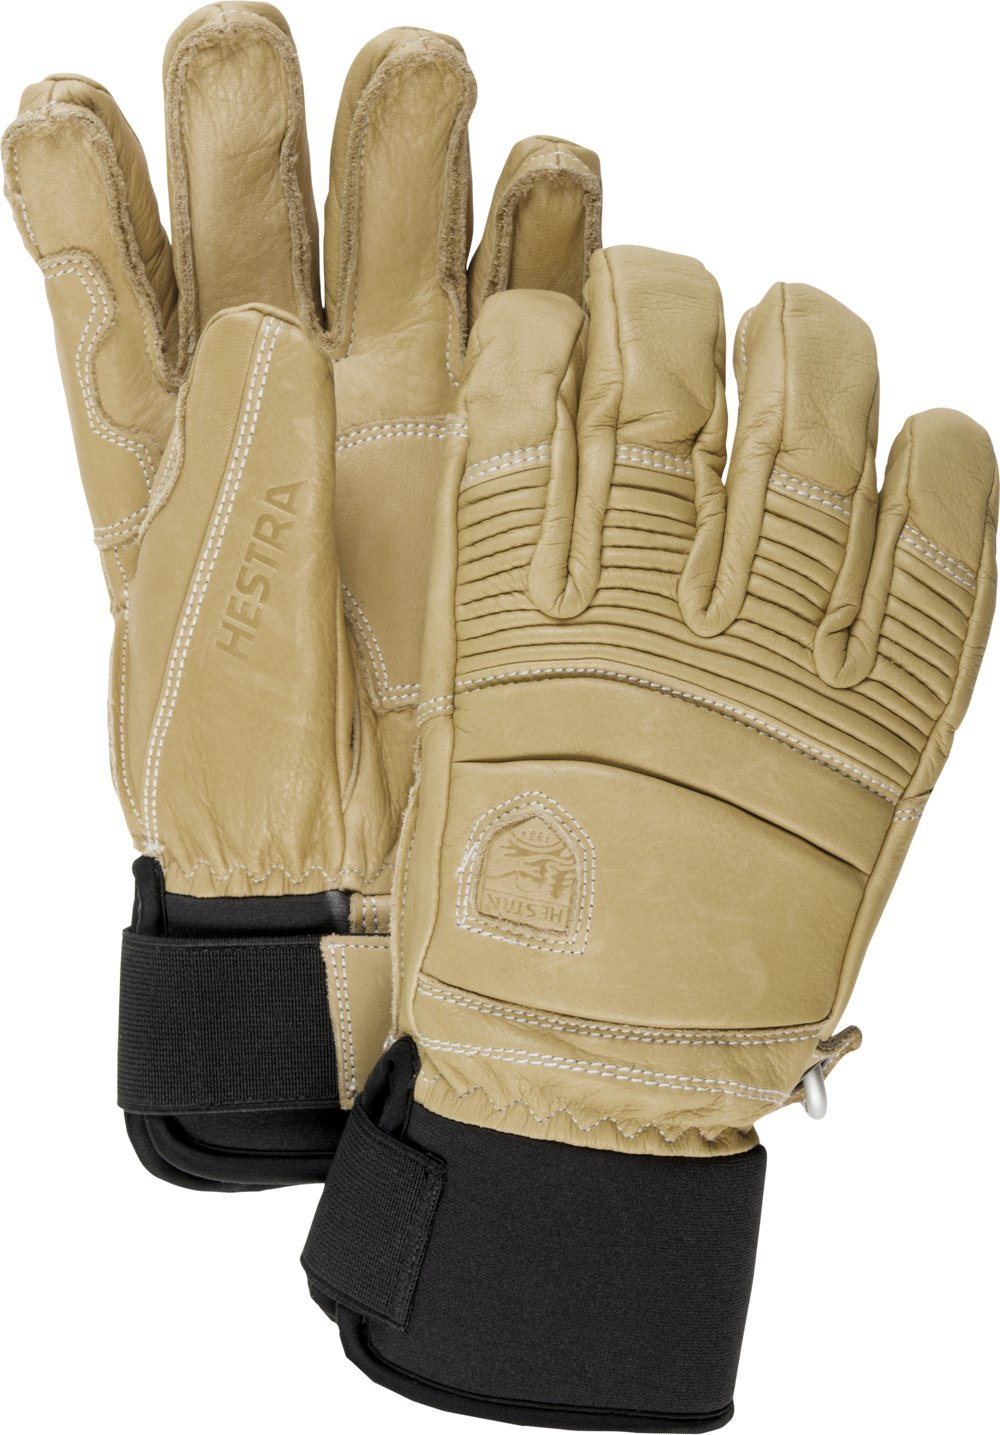 Hestra Fall Line Glove, Tan, 8